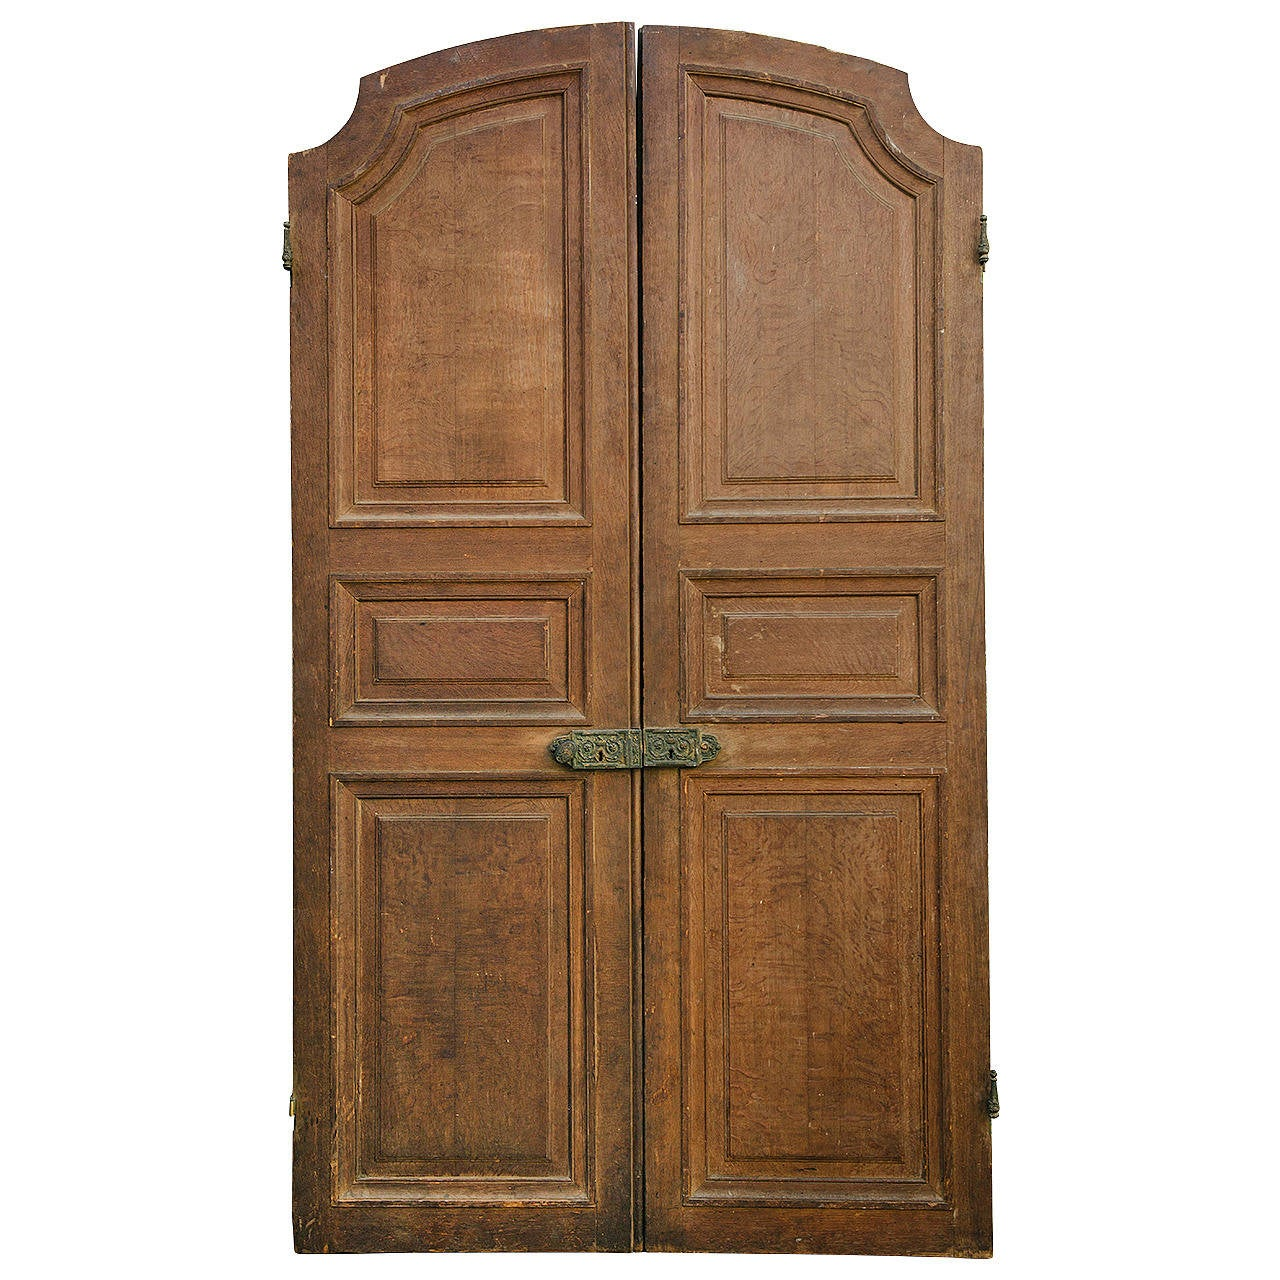 1280 #6E492B Antique French Oak Entry Doors 105 H X 60 W At 1stdibs save image Vintage Exterior Doors 41071280